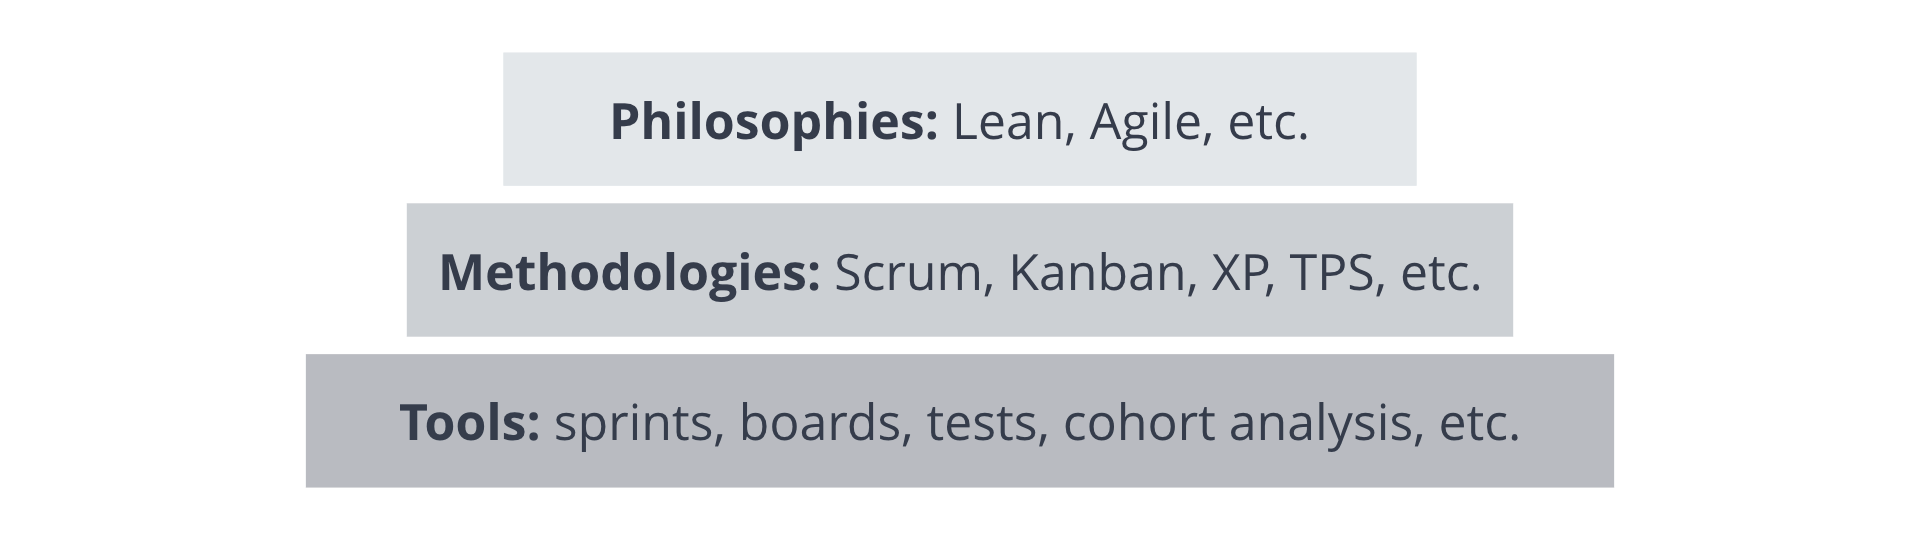 difference between agile and leand scrum and kanban scrum pinterest